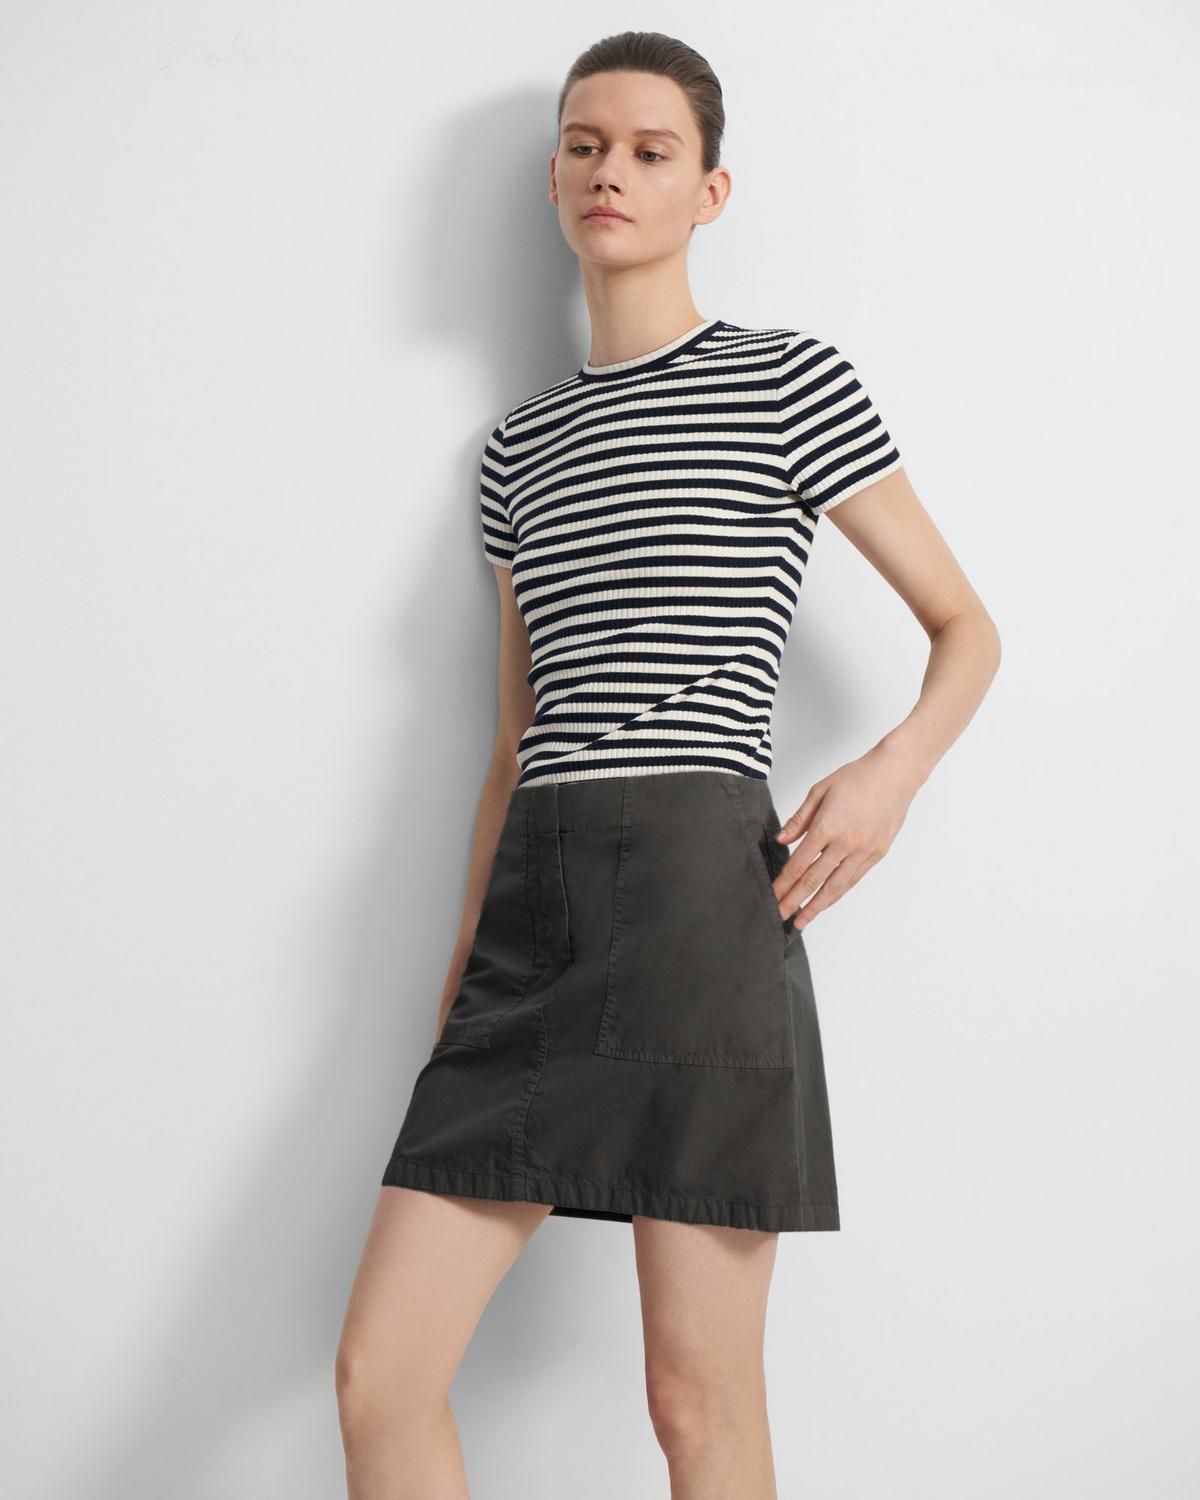 Utility Skirt in Garment Dyed Chino